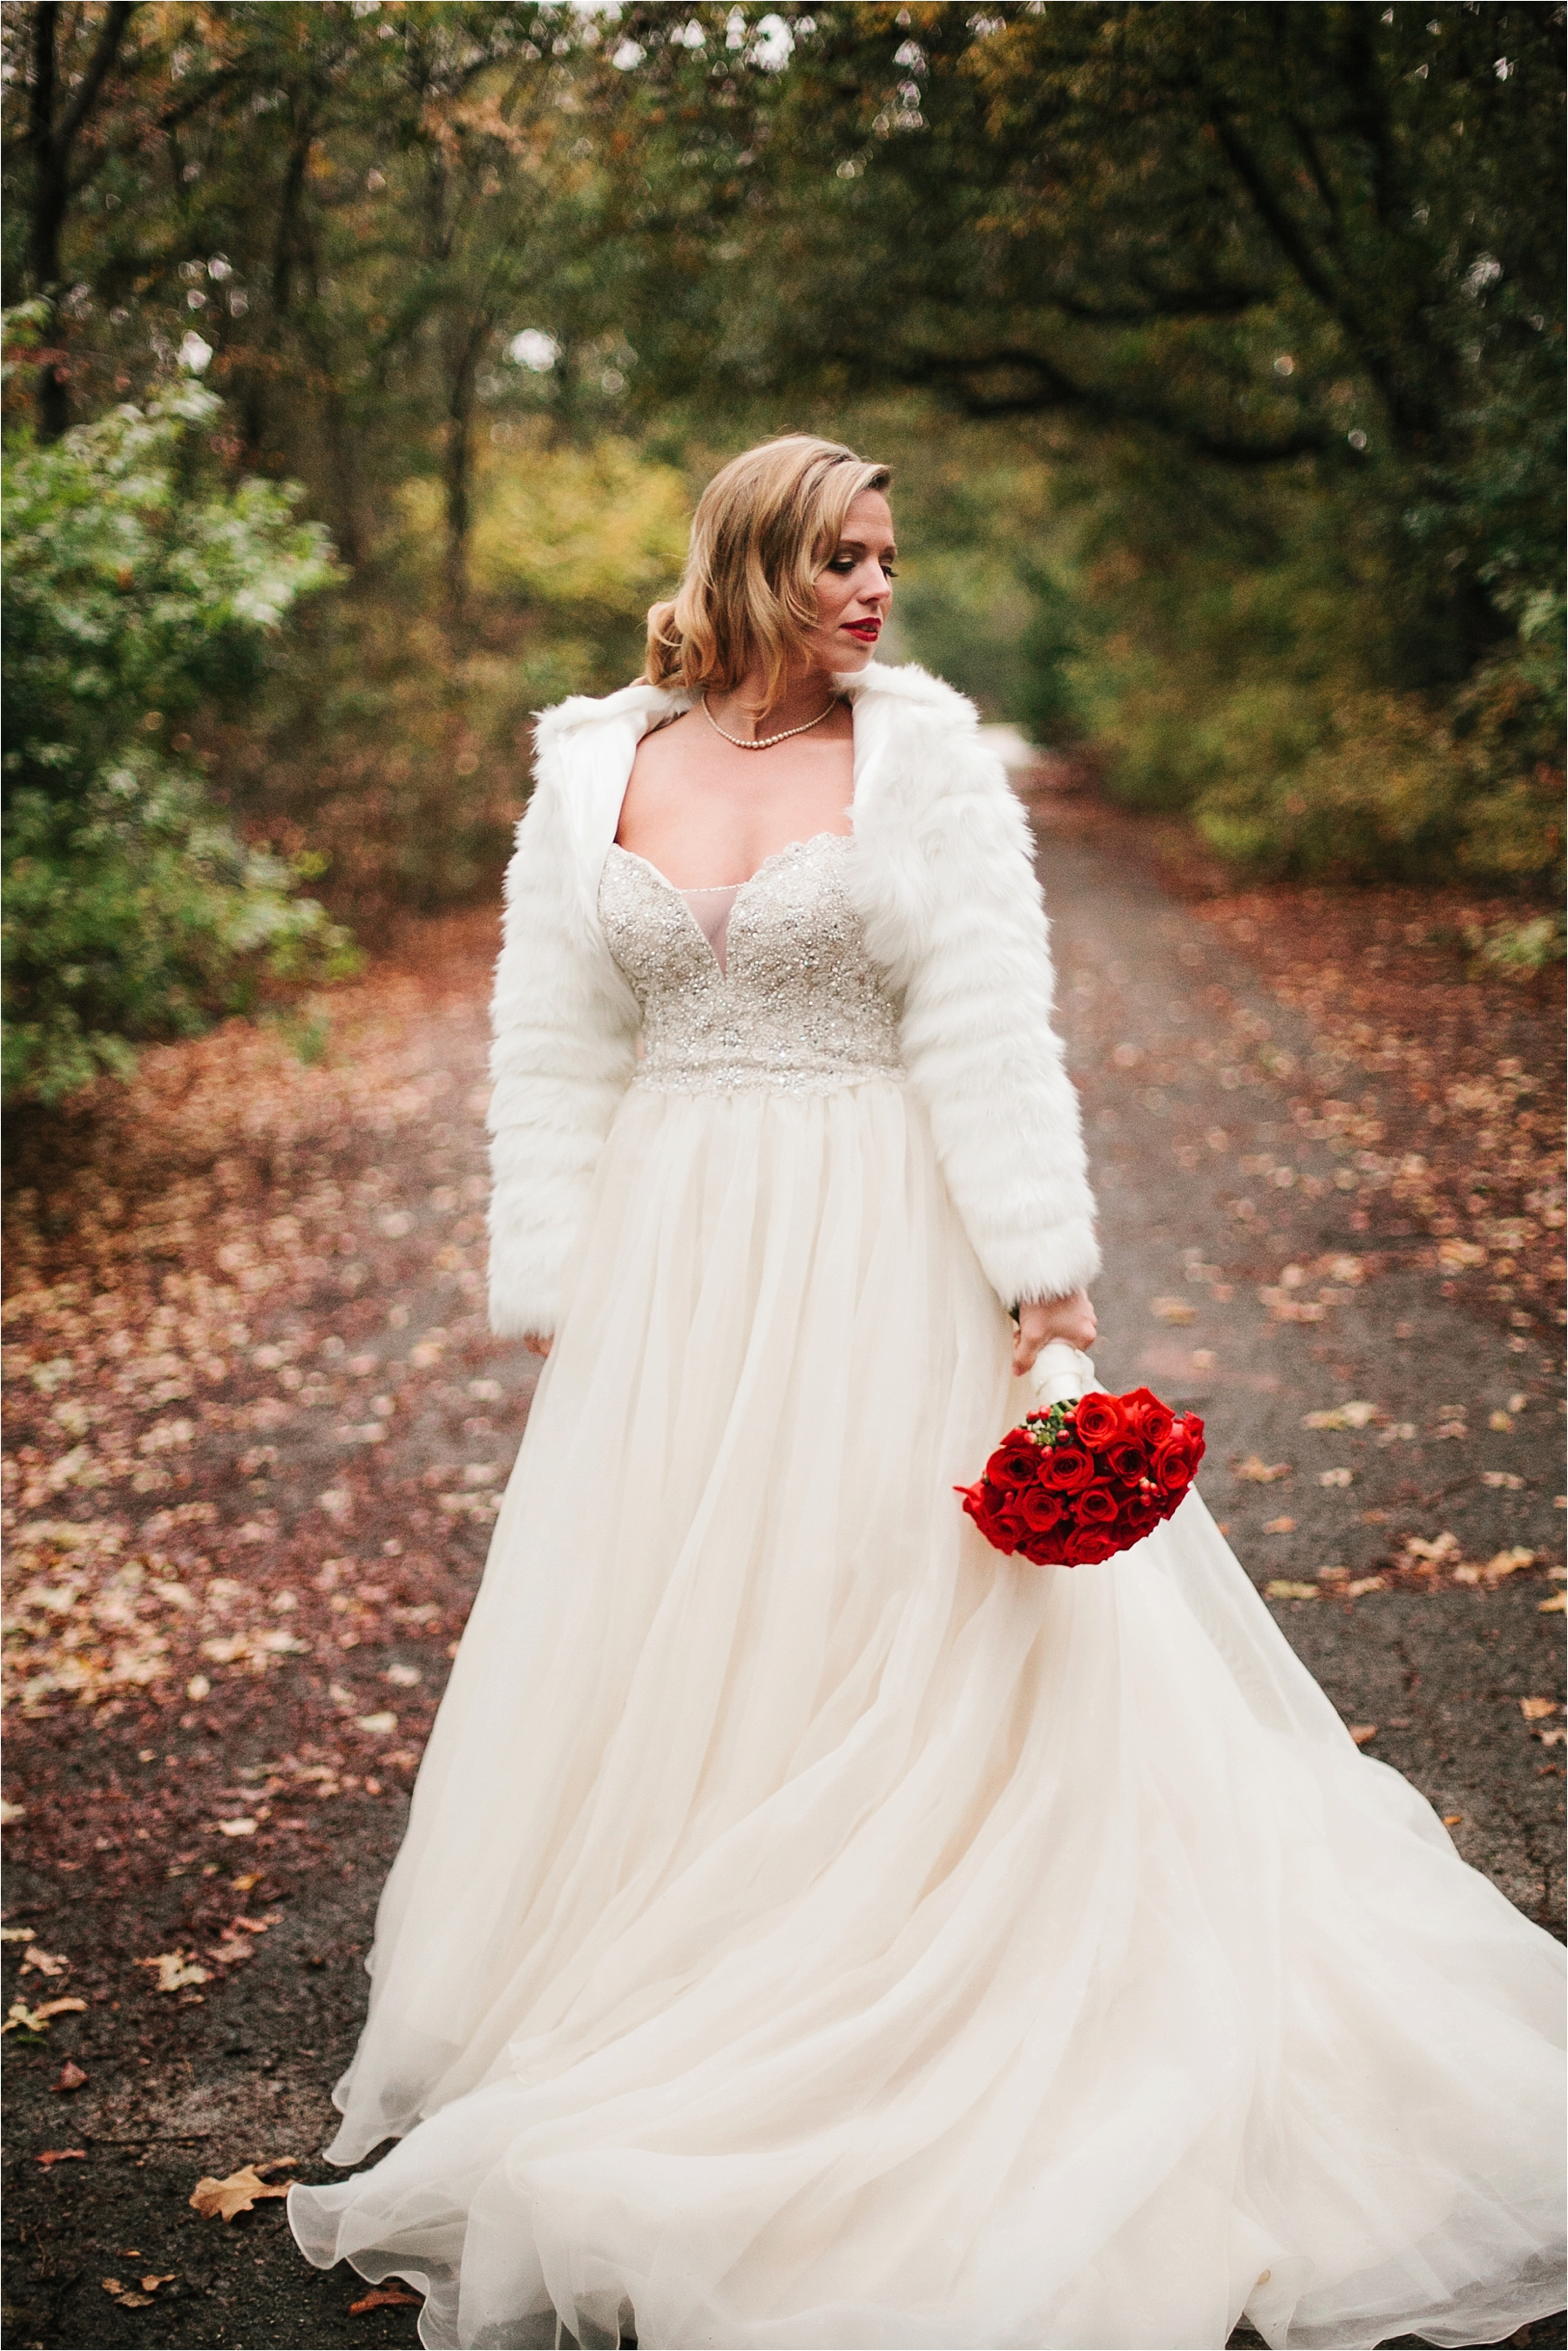 a-vintage-bridal-session-with-red-accents-in-Grapevine-TX-_-by-North-Texas-Wedding-Photographer-Rachel-Meagan-Photography-_-13